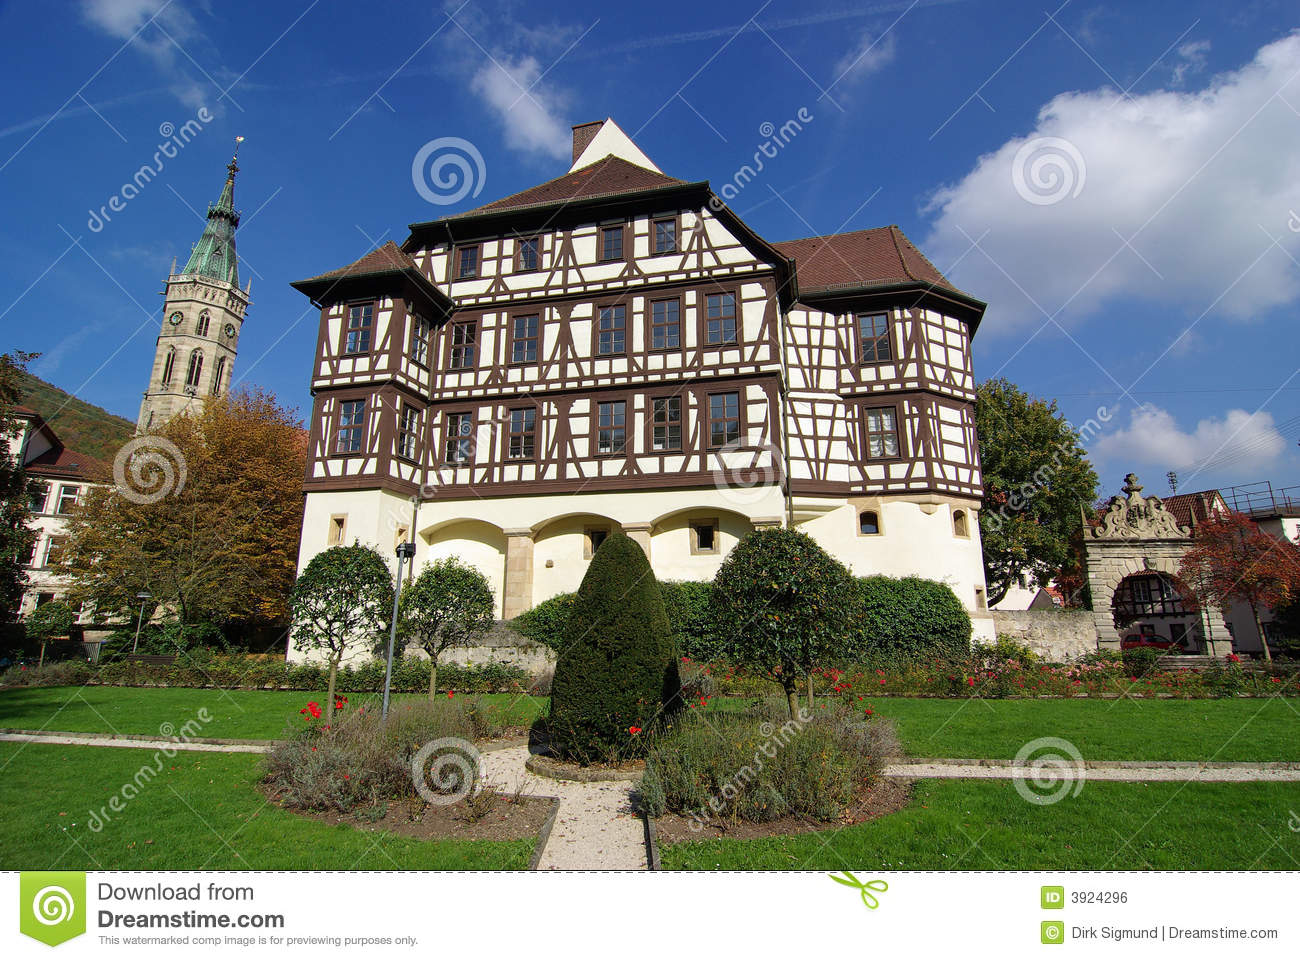 Bad Urach Germany  city pictures gallery : Castle Bad Urach founded 1443, Bad Urach, Germany.